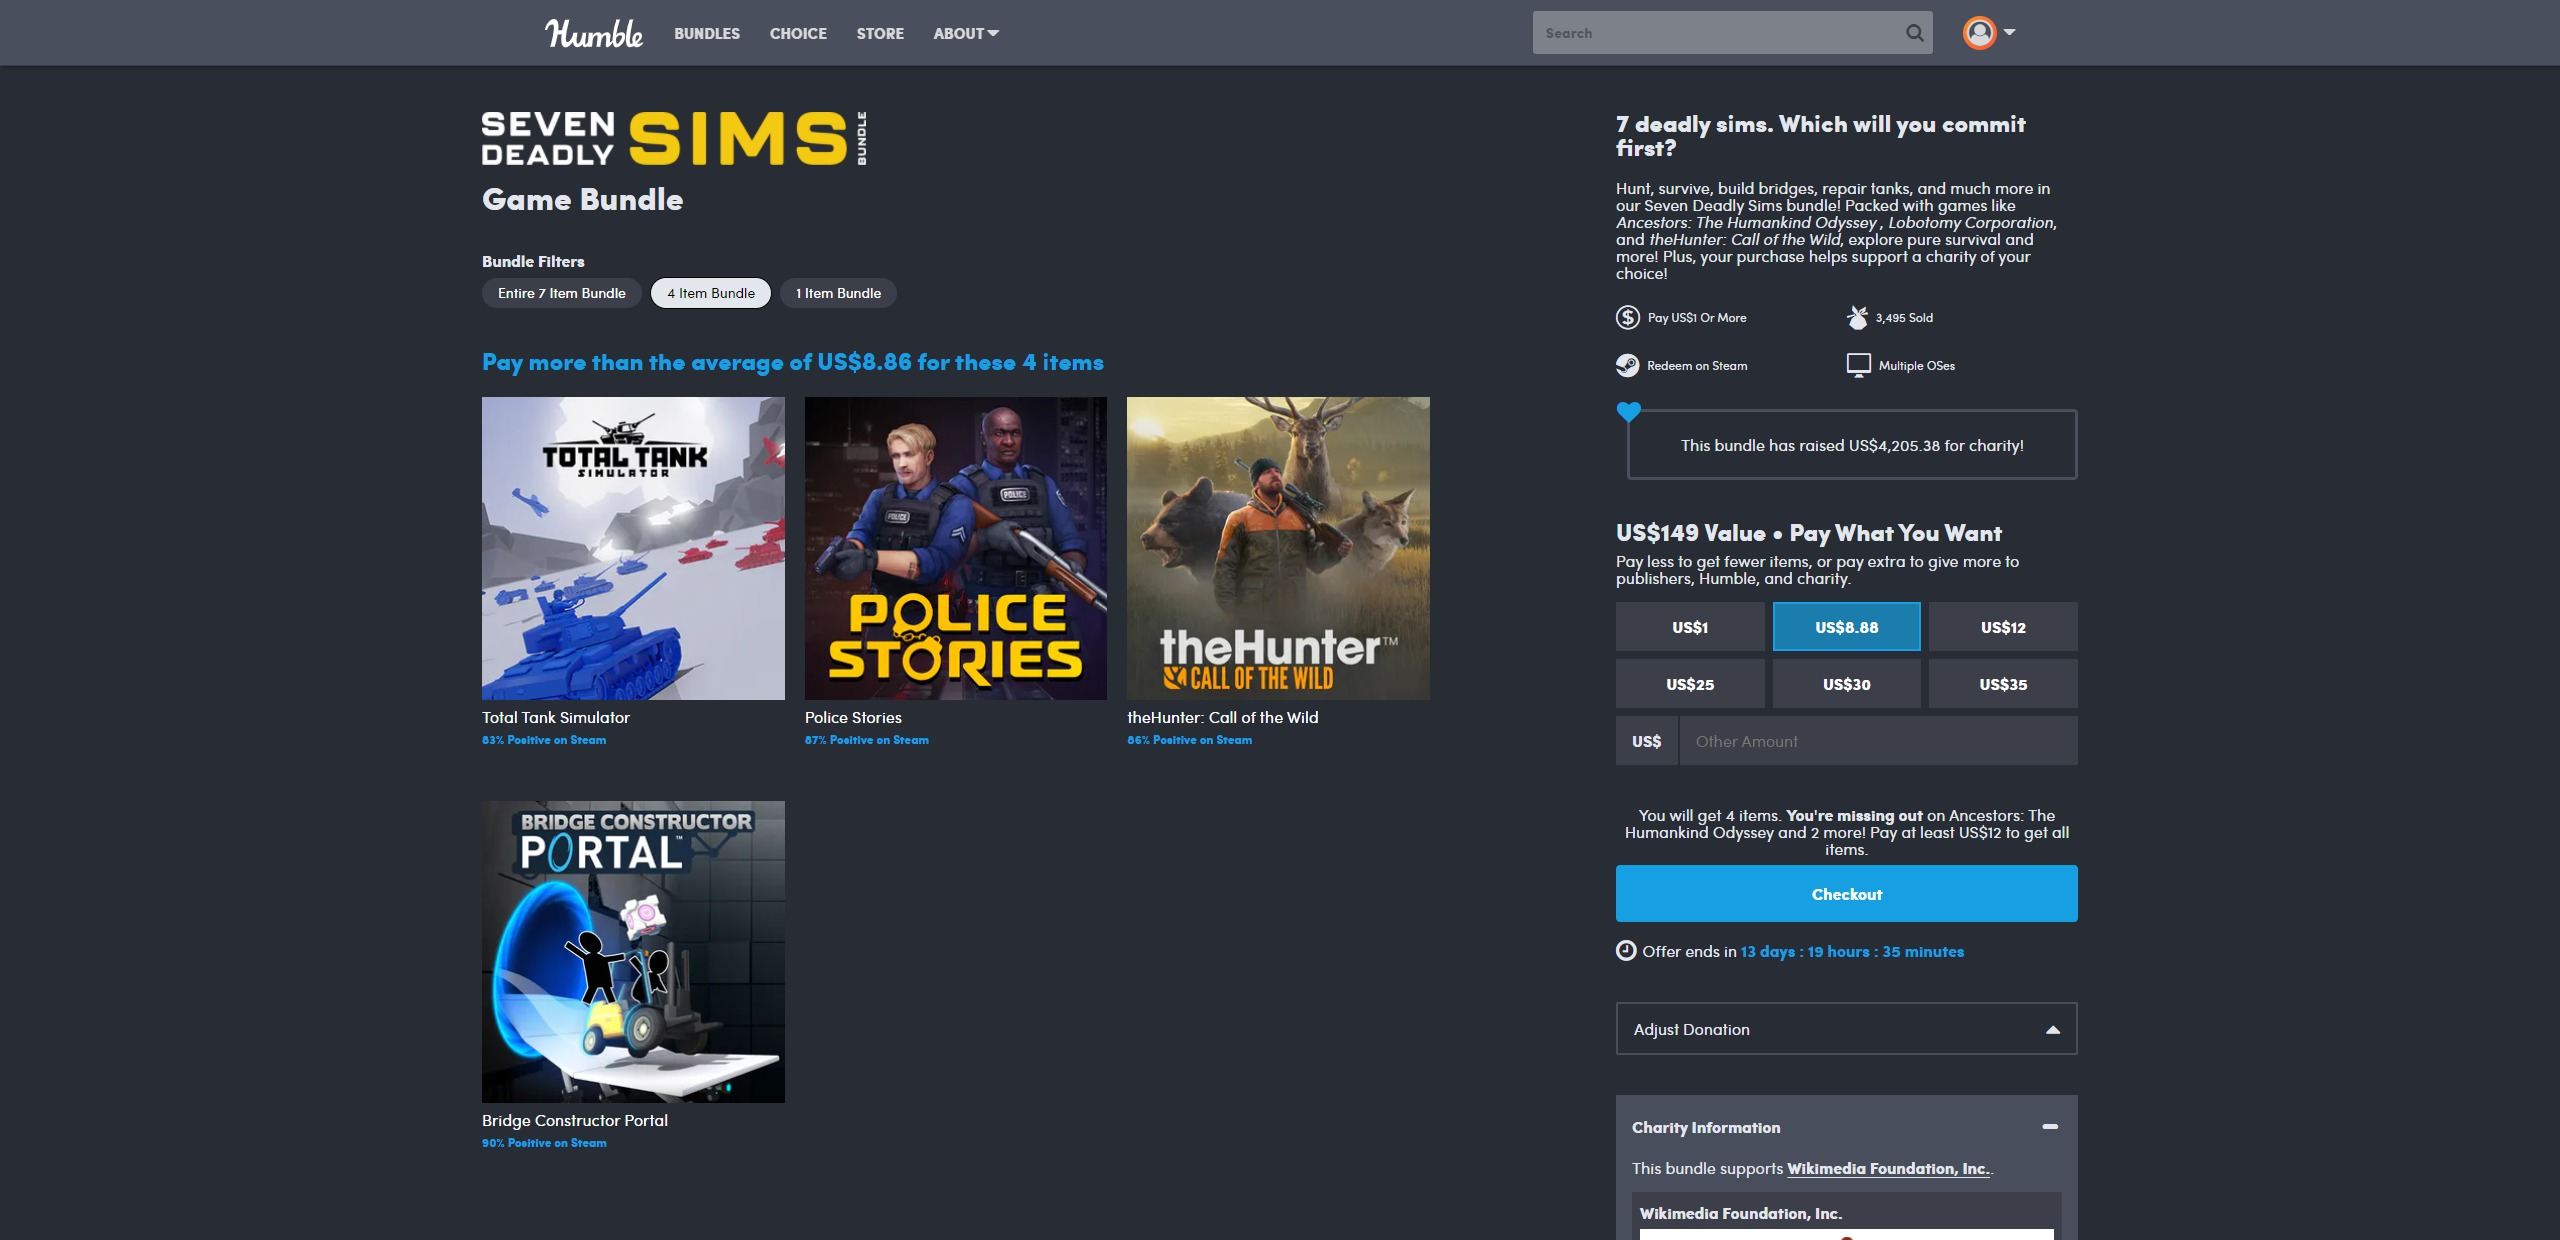 FireShot Capture 038 - Humble Seven Deadly Sims Bundle (pay what you want and help charity)_ - www.humblebundle.com.jpg